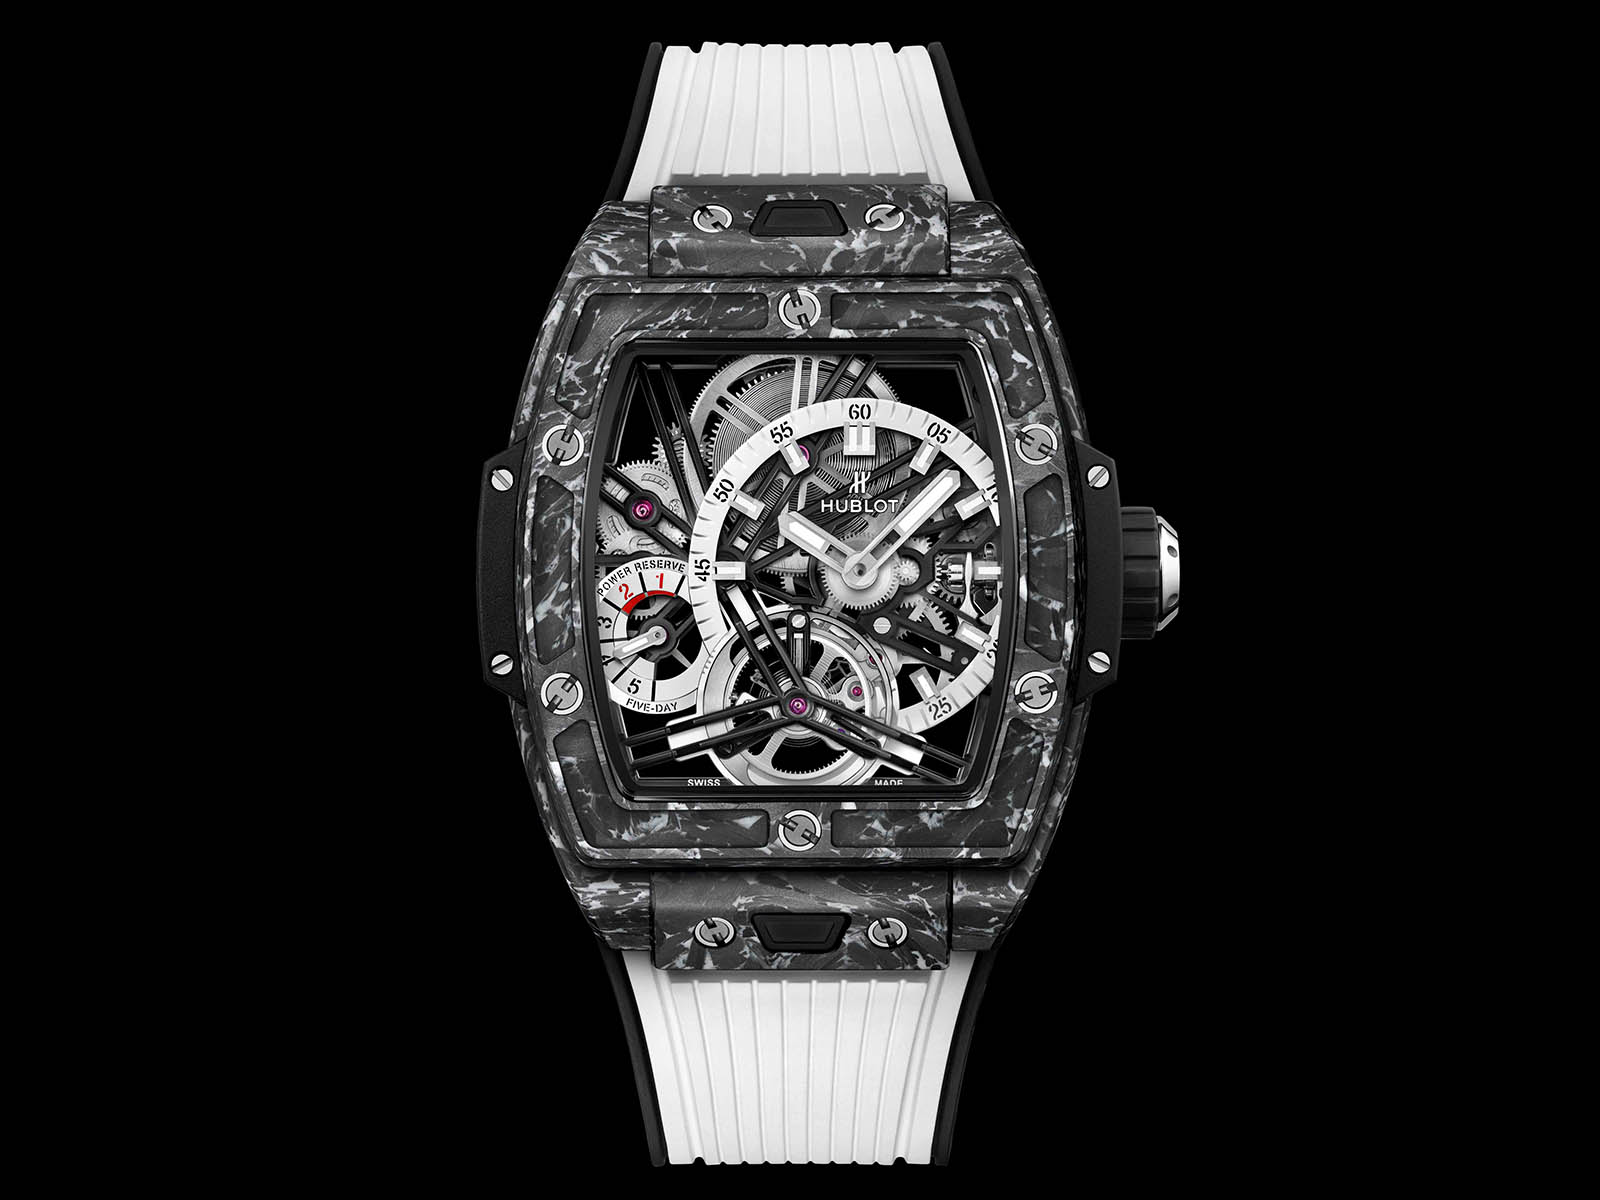 hublot-spirit-of-big-bang-tourbillon-5-day-power-reserve-carbon-white-7.jpg